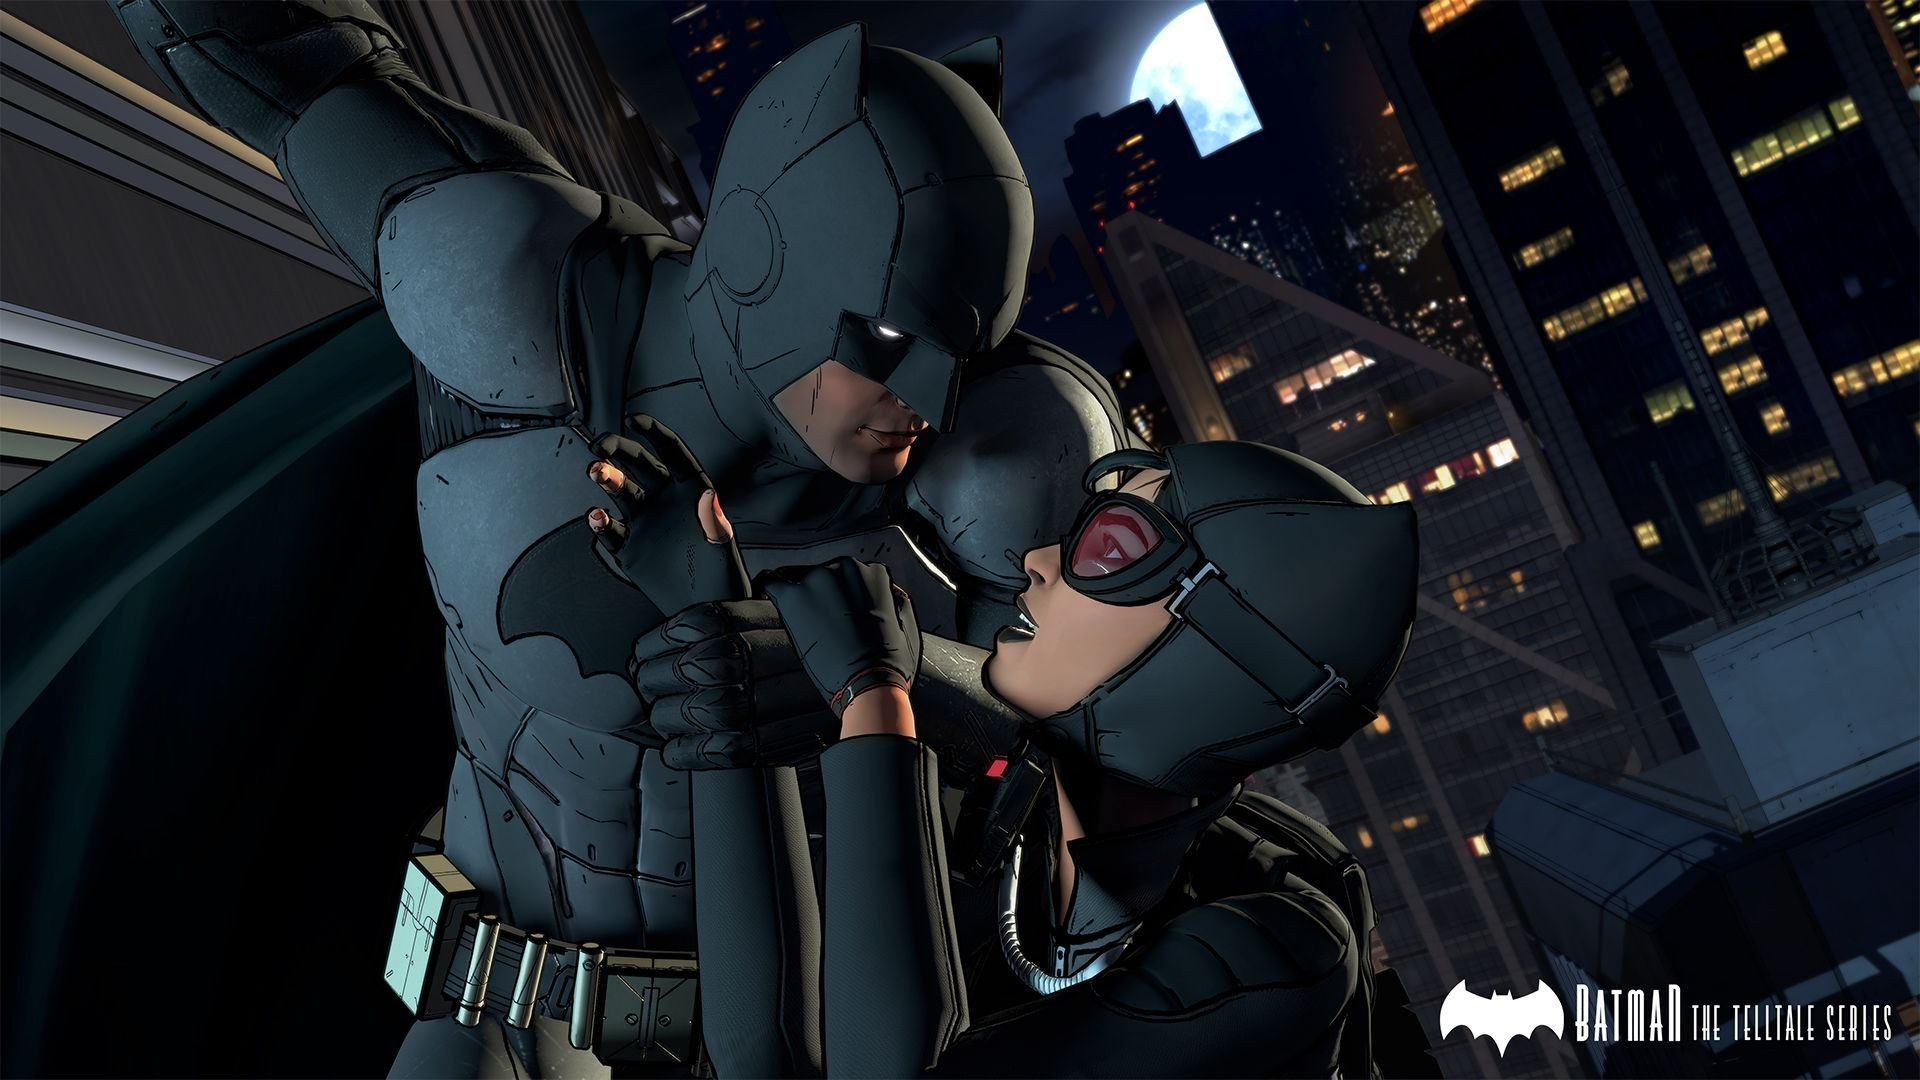 Batman: The Telltale Series (PS4, PS3, Xbox 360, Xbox One, PC, Android, & iOS)